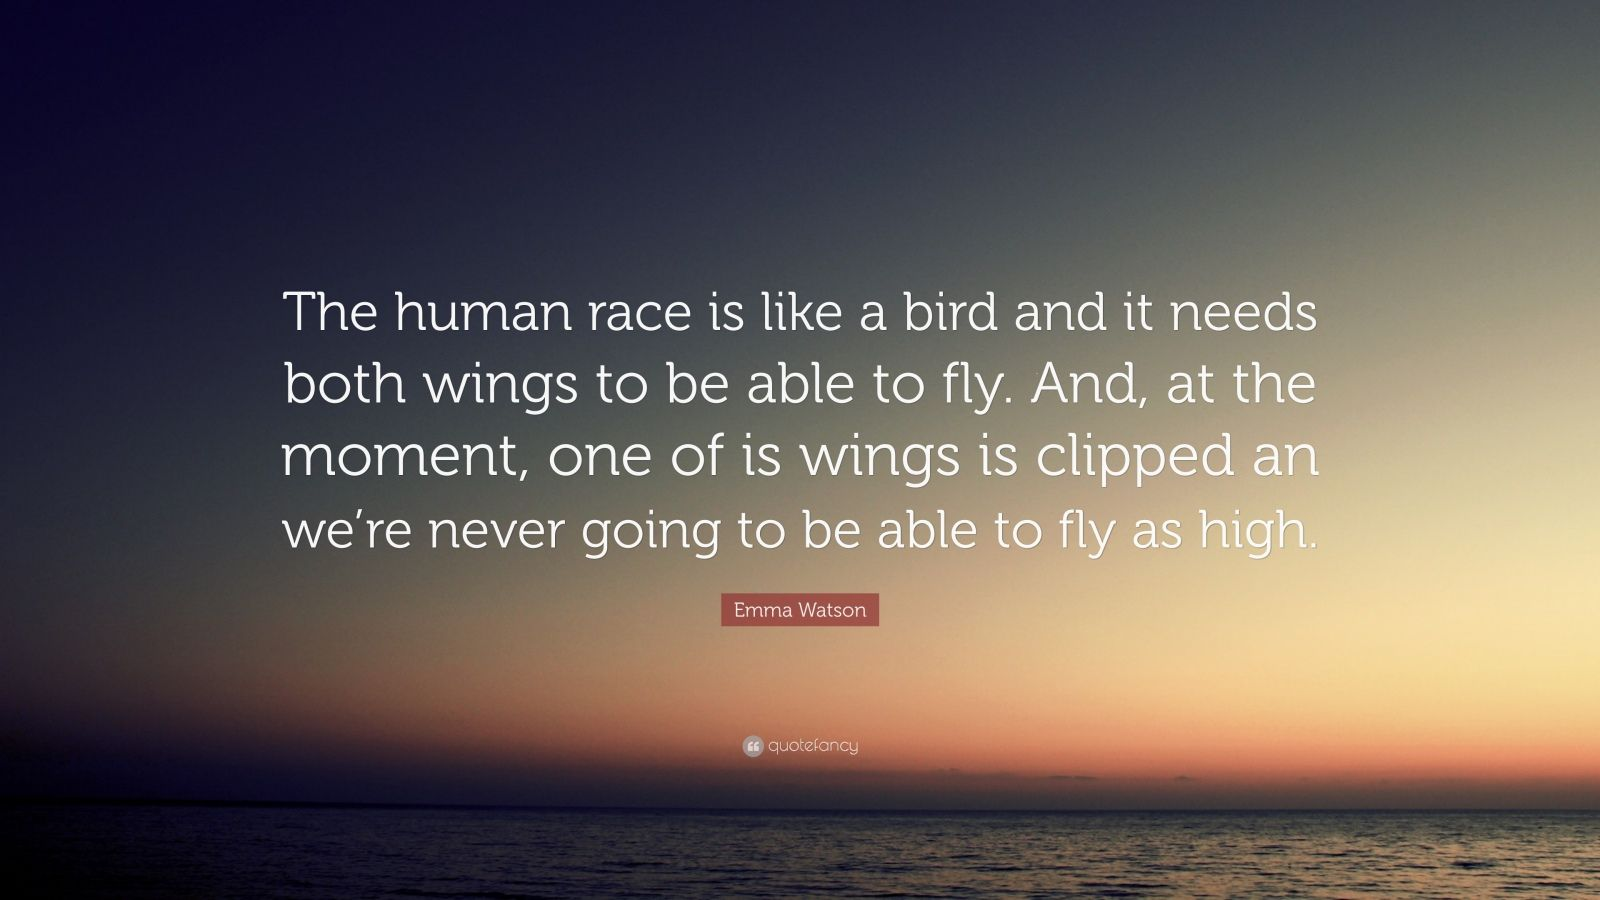 """Emma Watson Quote: """"The human race is like a bird and it needs both wings to be able to fly. And, at the moment, one of is wings is clipped an we're never going to be able to fly as high."""""""